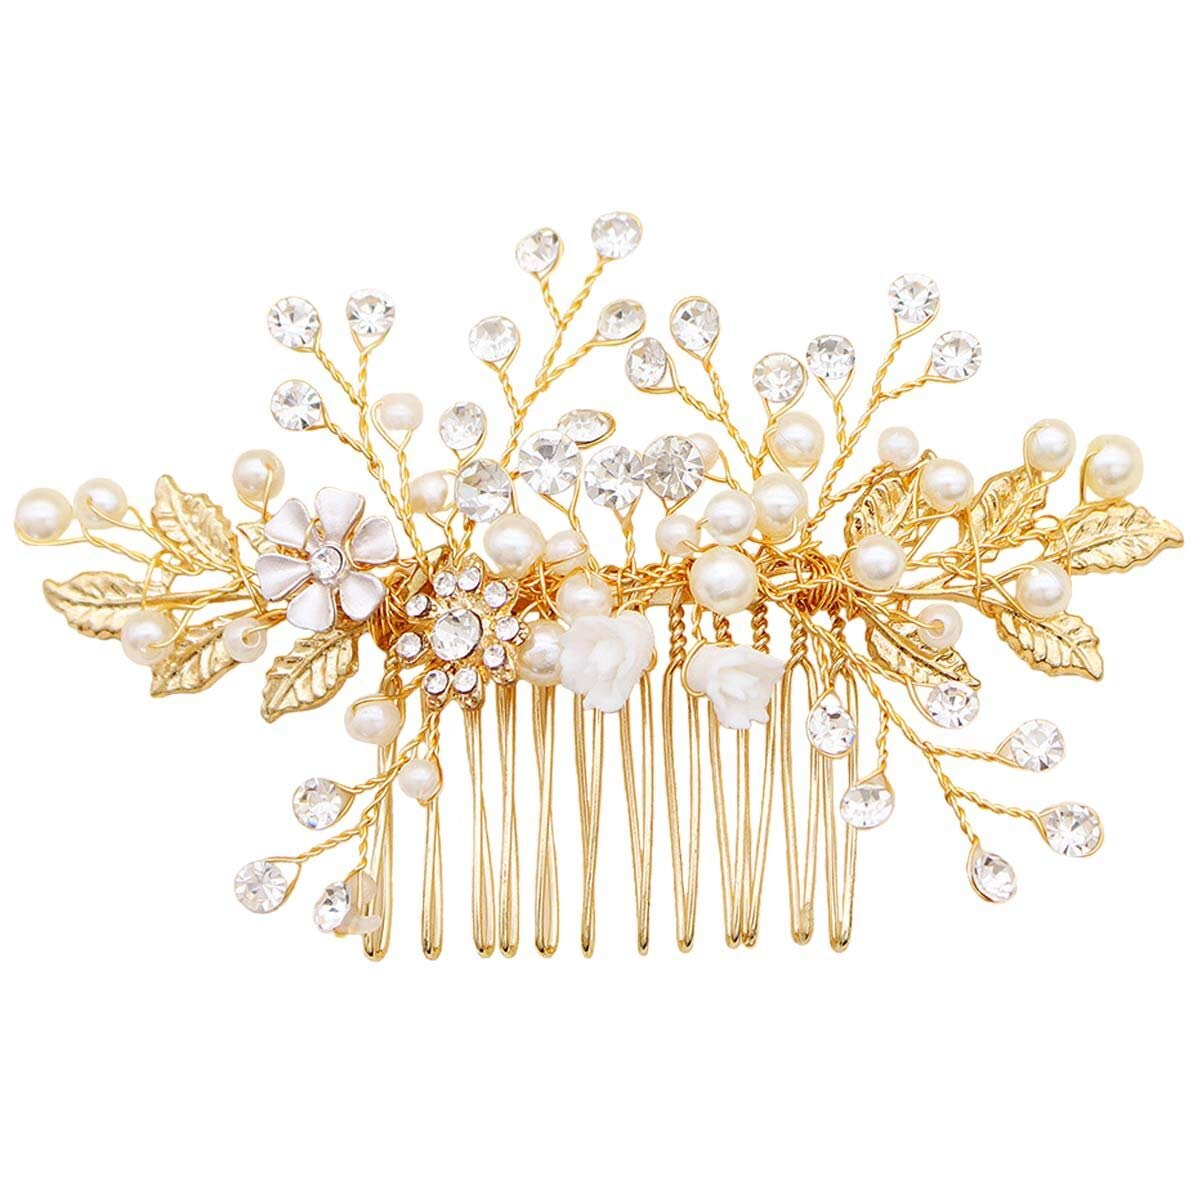 Sppry Bridal Hair Comb - Bendable Pearl Crystal Hair Accessory for Women at Wedding, Gold by Sppry